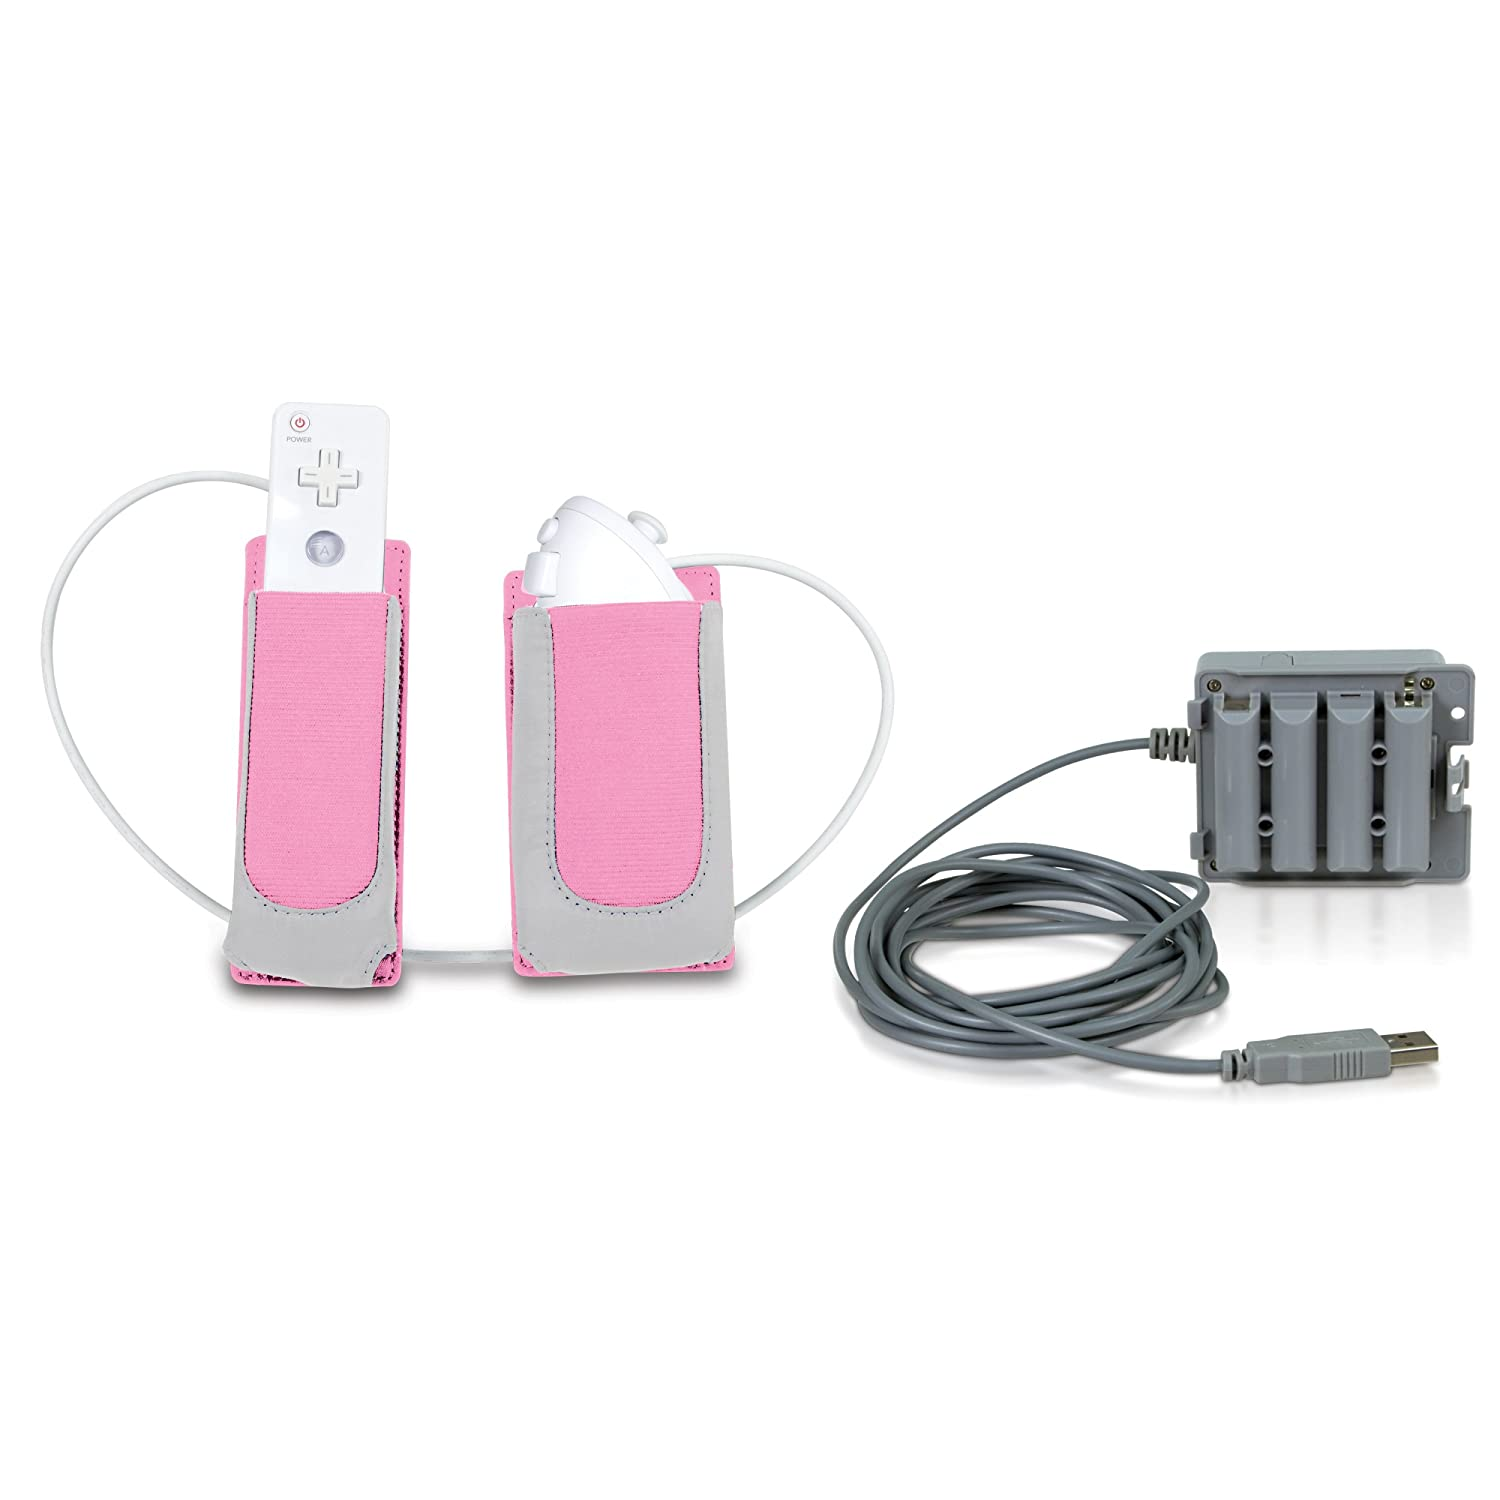 Wii Fit 2 in 1 Lady Fitness 2 Fit Workout Kit